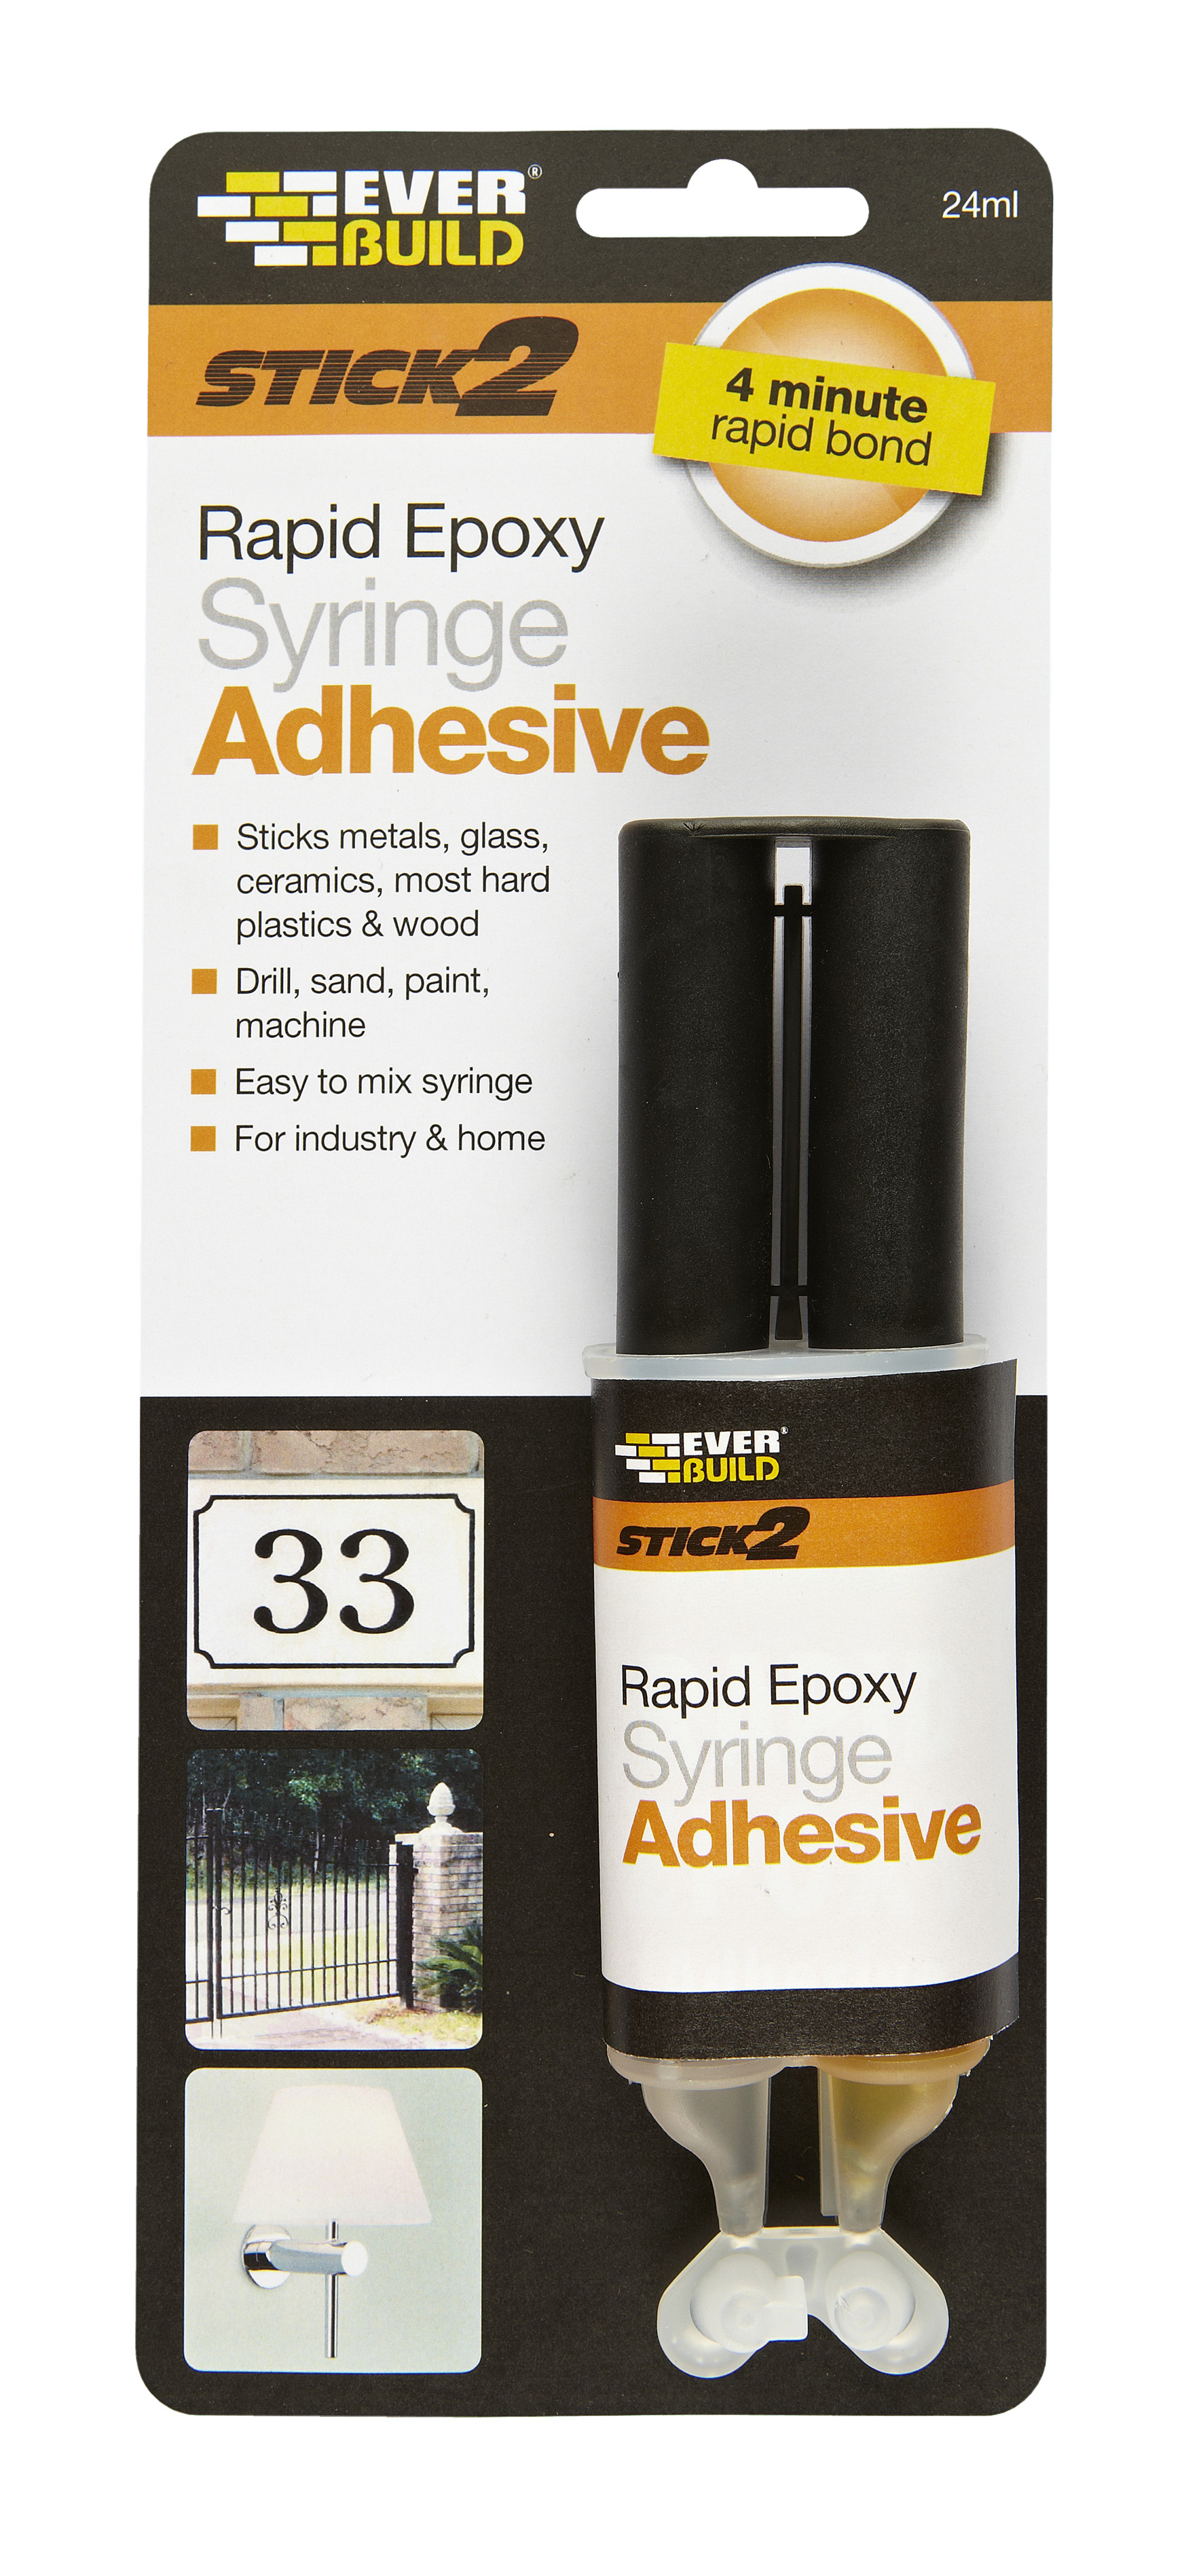 Everbuild Stick 2 2-Part Industrial Strength Rapid Epoxy Syringe 24ml